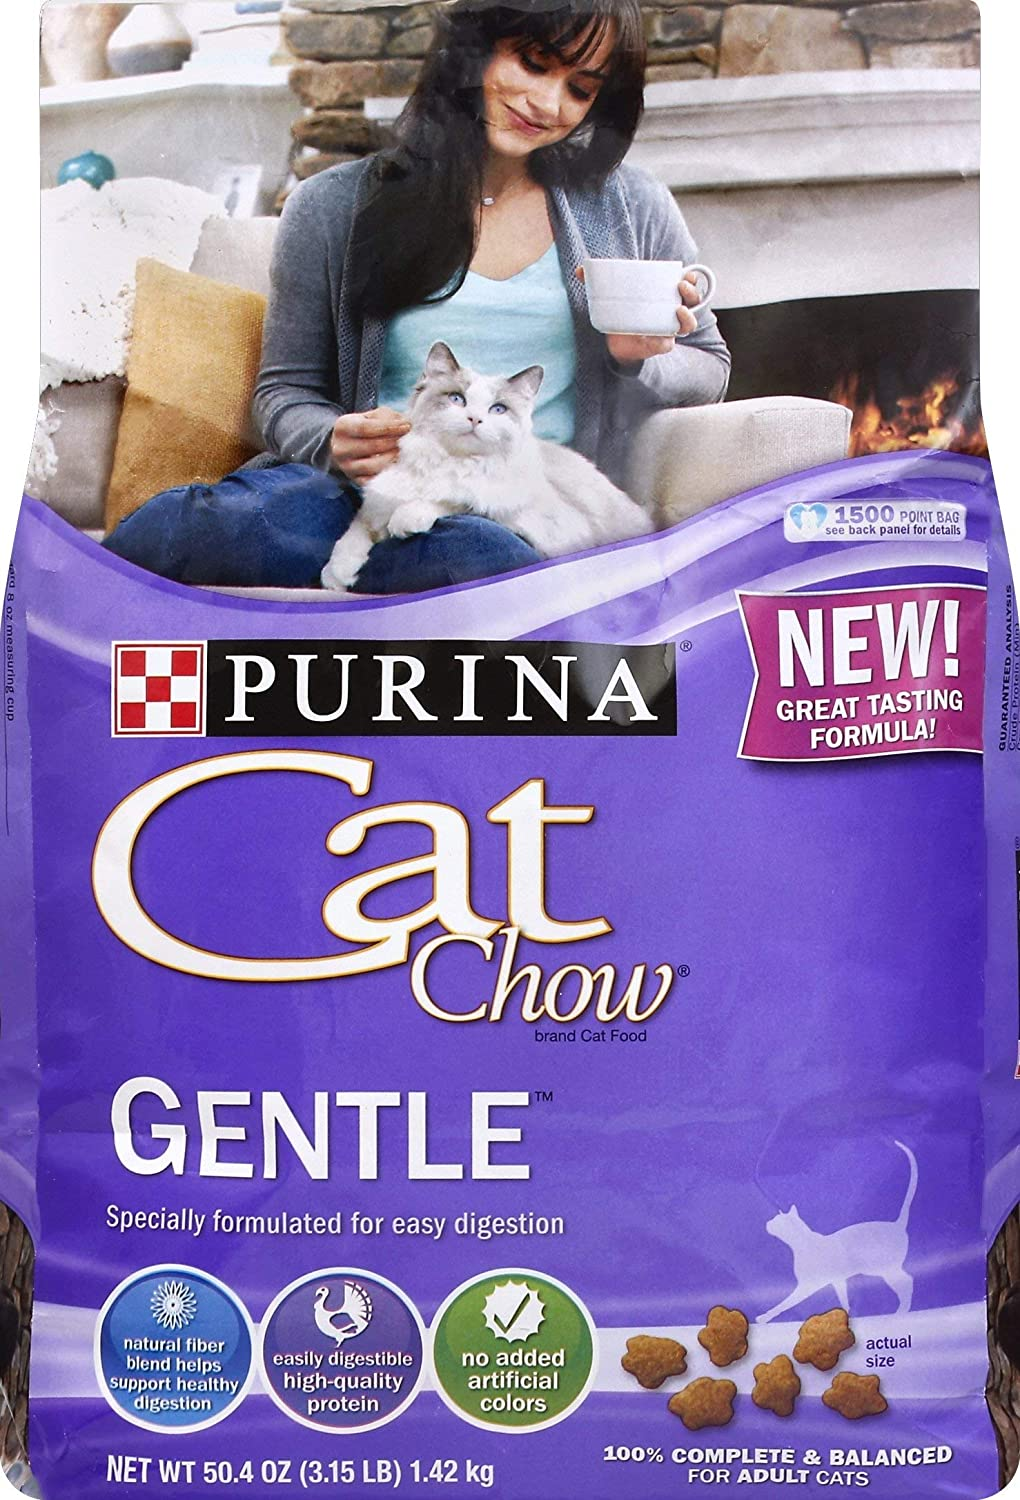 Purina Cat Chow Dry Cat Food, Gentle, 3.15 Lb Bag